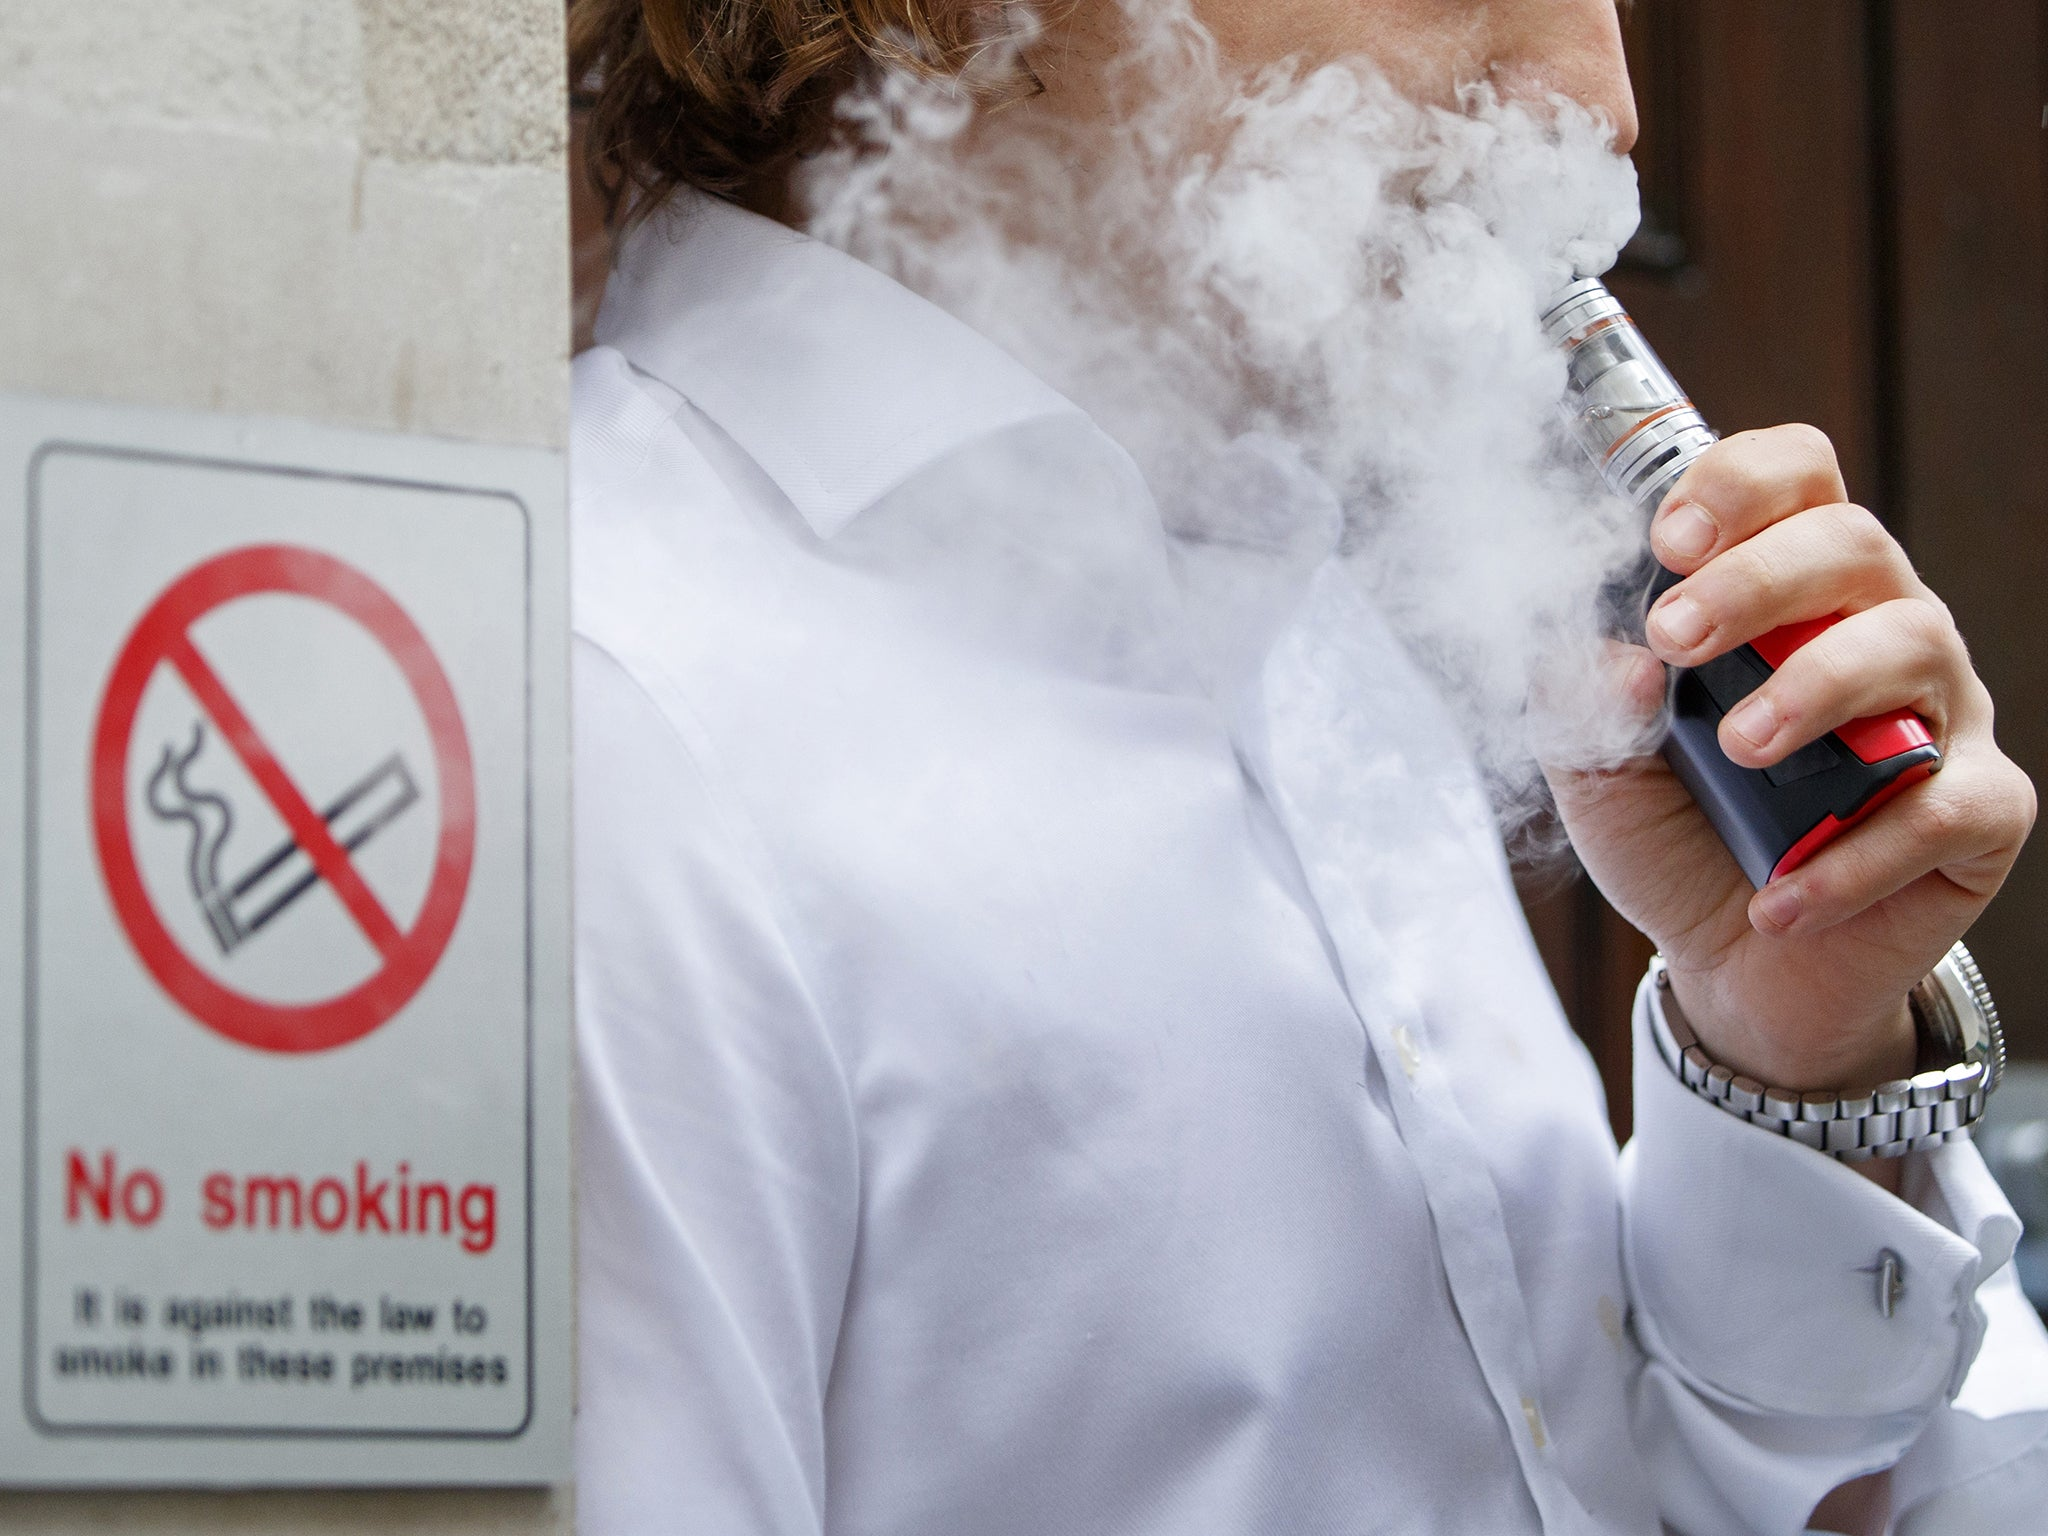 Vaping disables the lung's cleaning systems and could cause